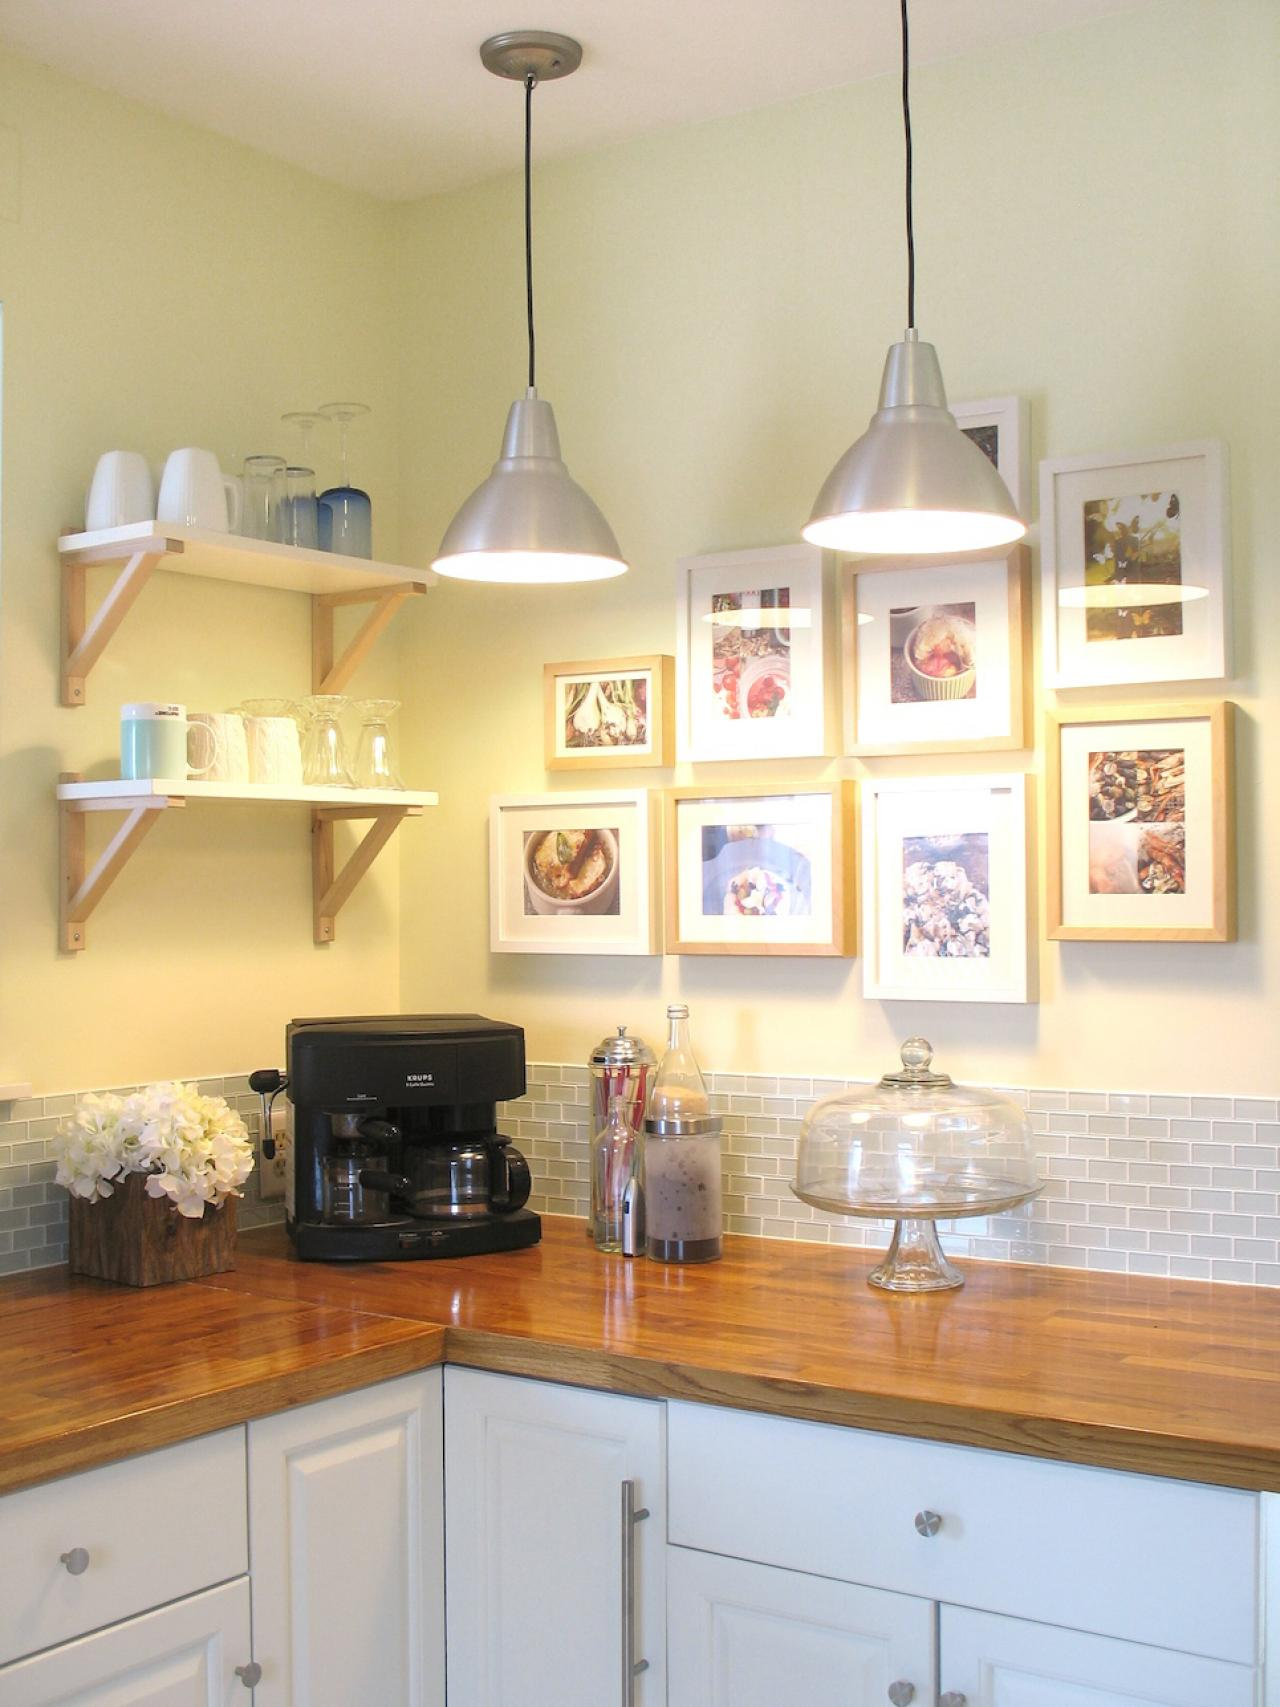 Choosing Paintings for Your Kitchen